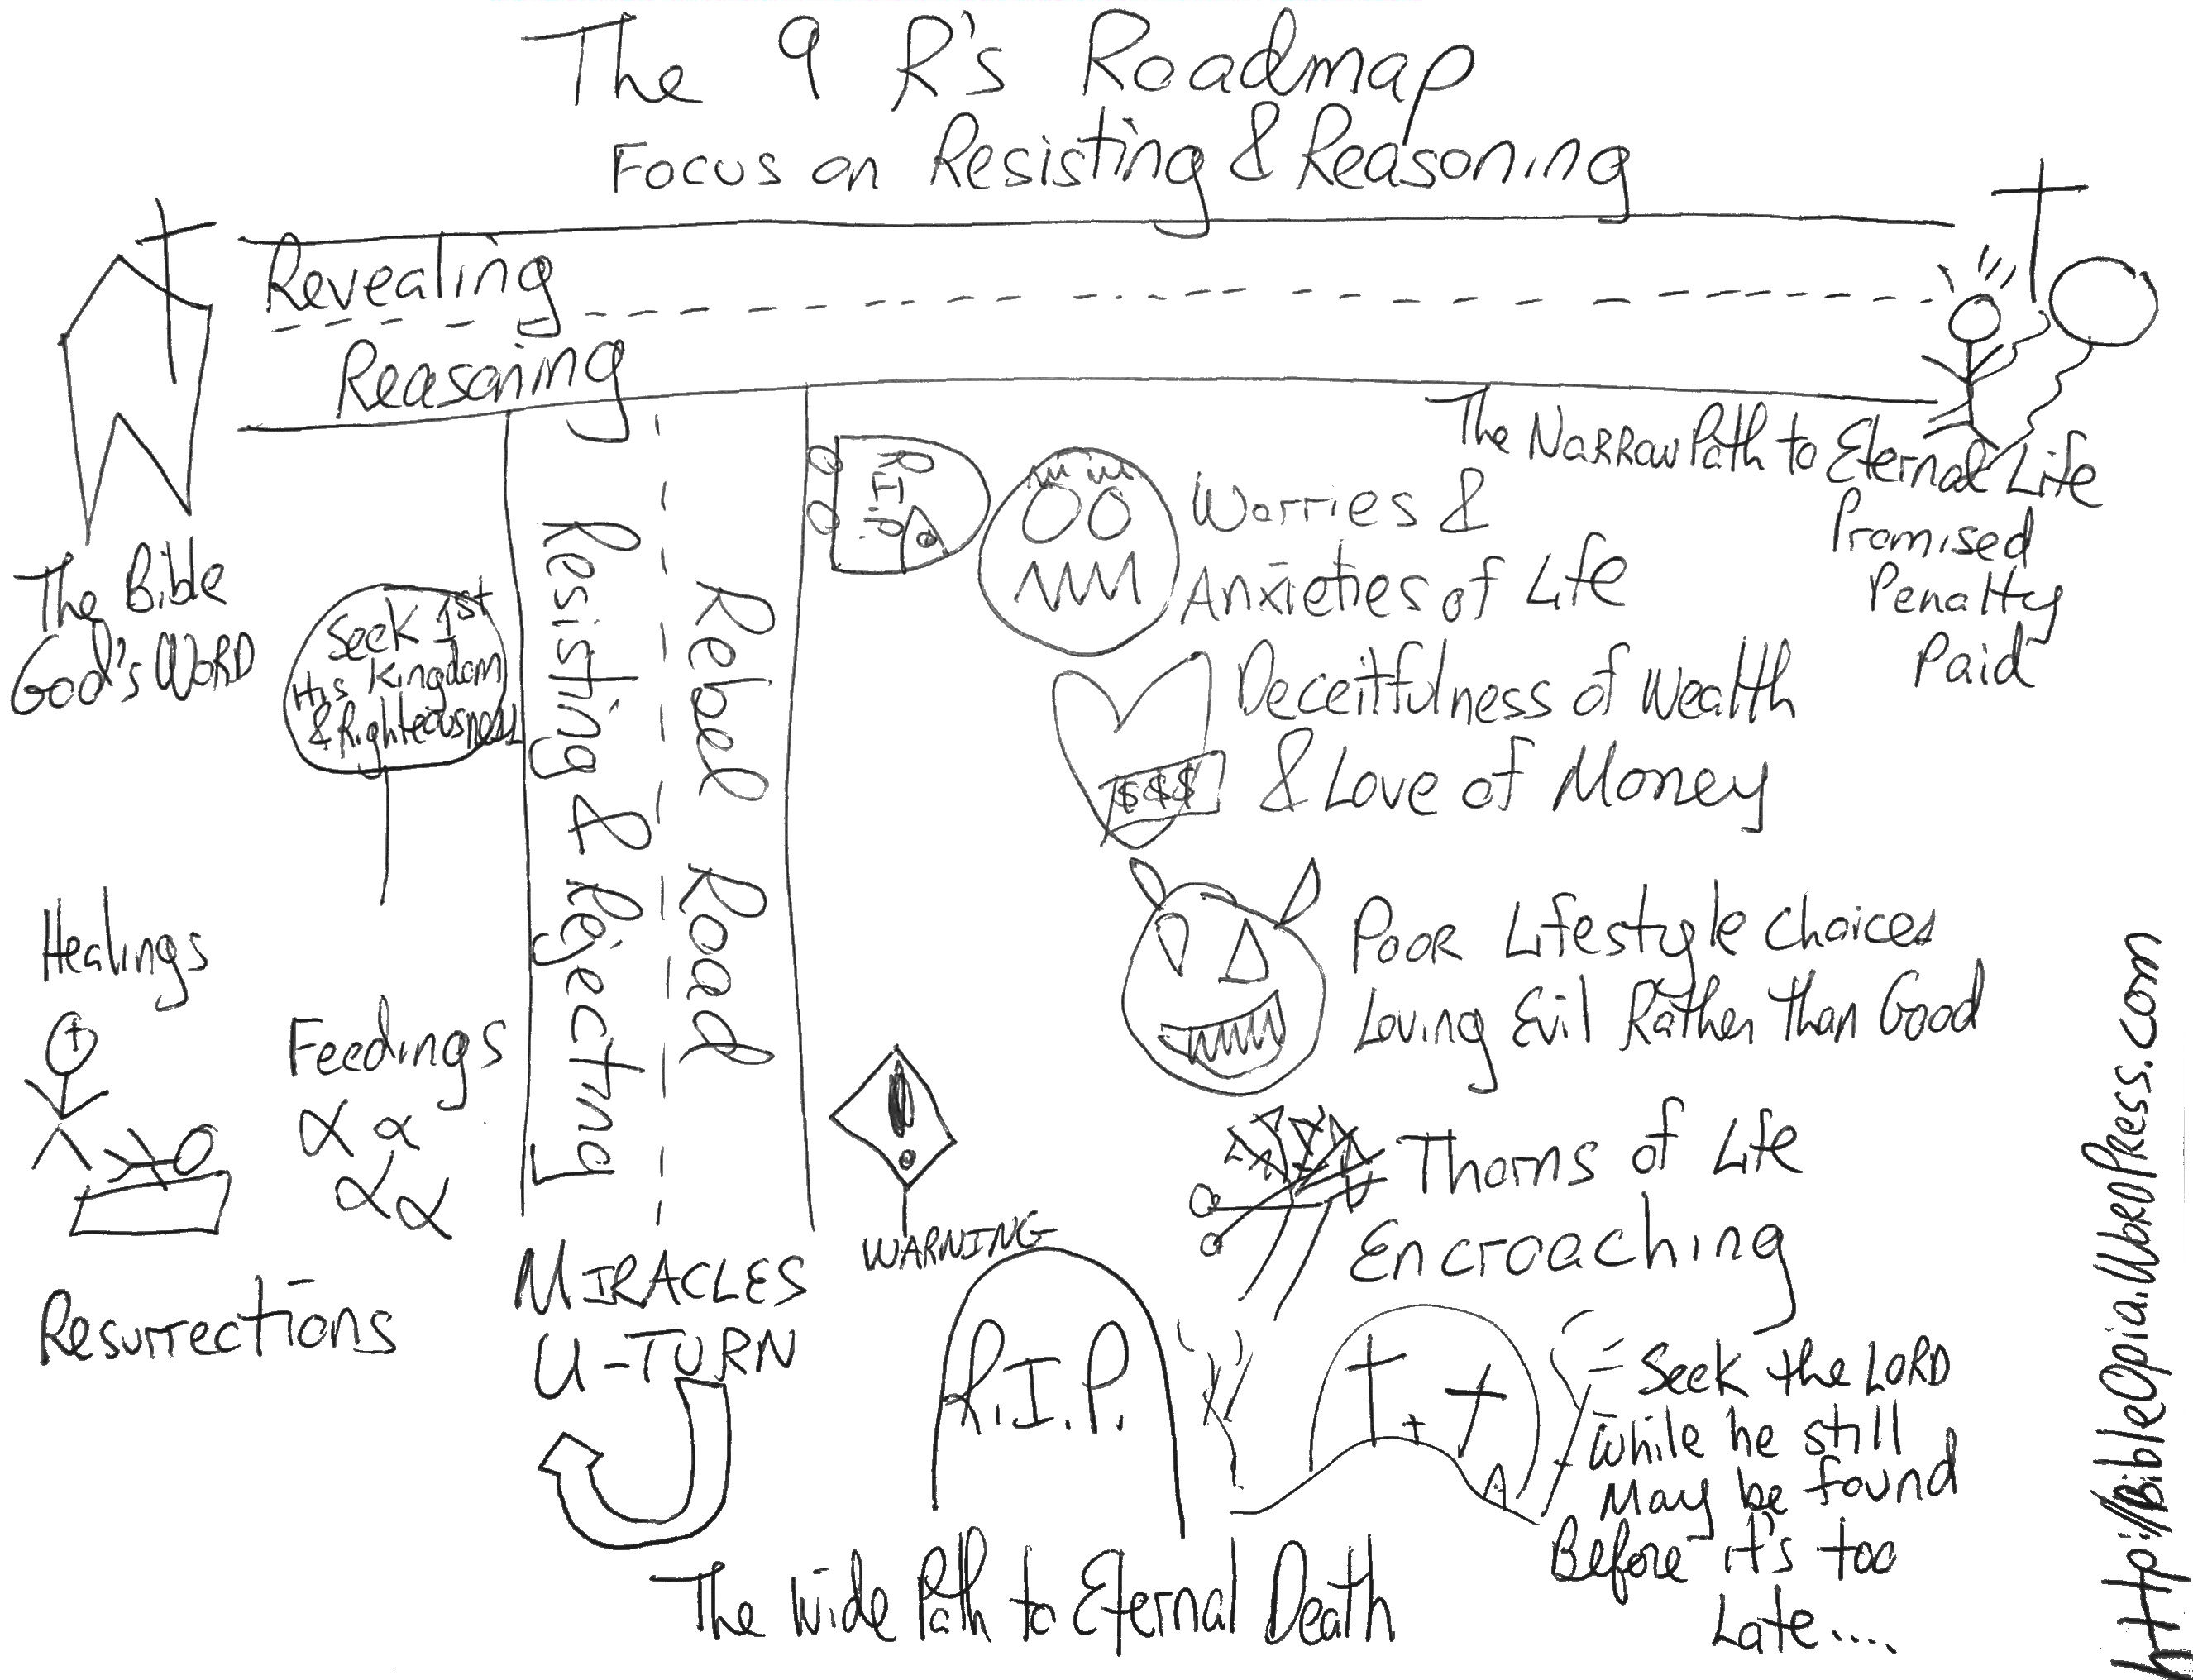 Drawn road road map R's Resisting Concept of Hand